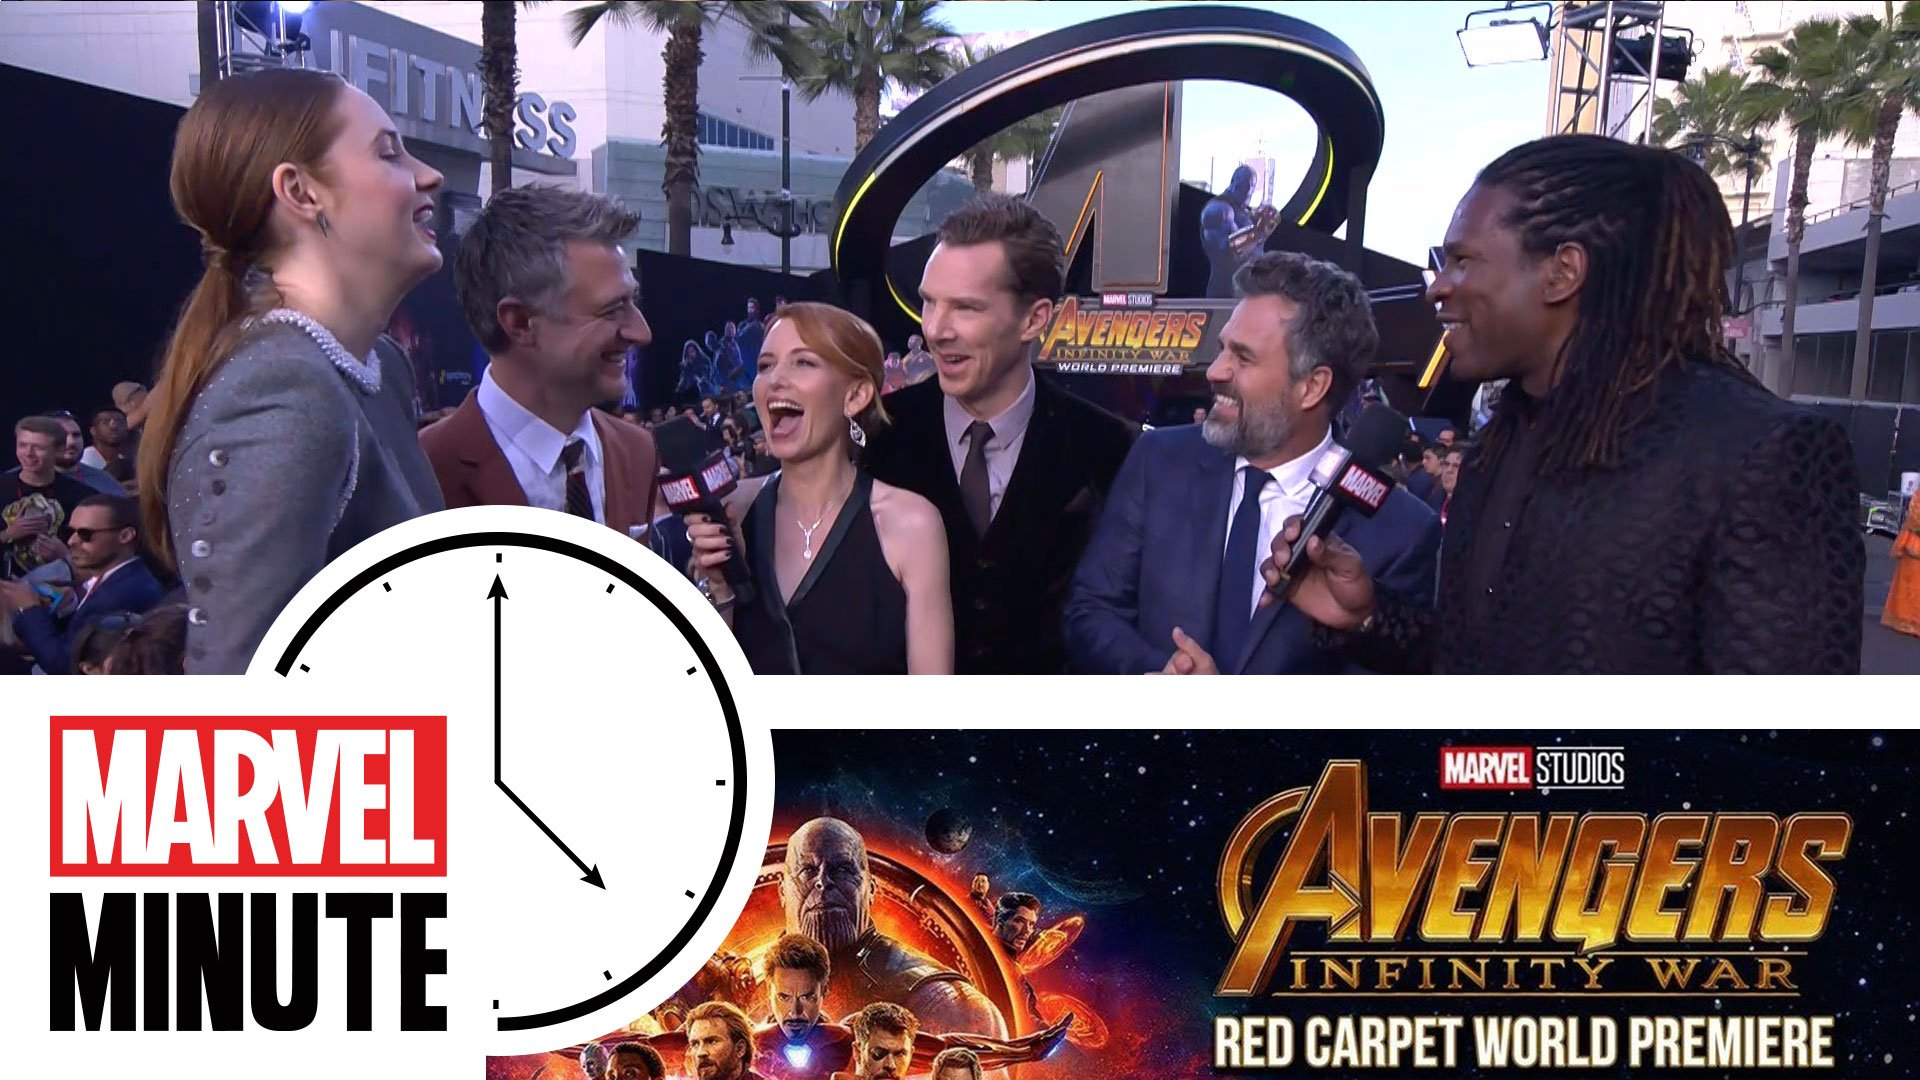 Marvel Studios' @Avengers: #InfinityWar is here! It's time for your #MarvelMinute with host @LorraineCink. https://t.co/dm54D5bymg